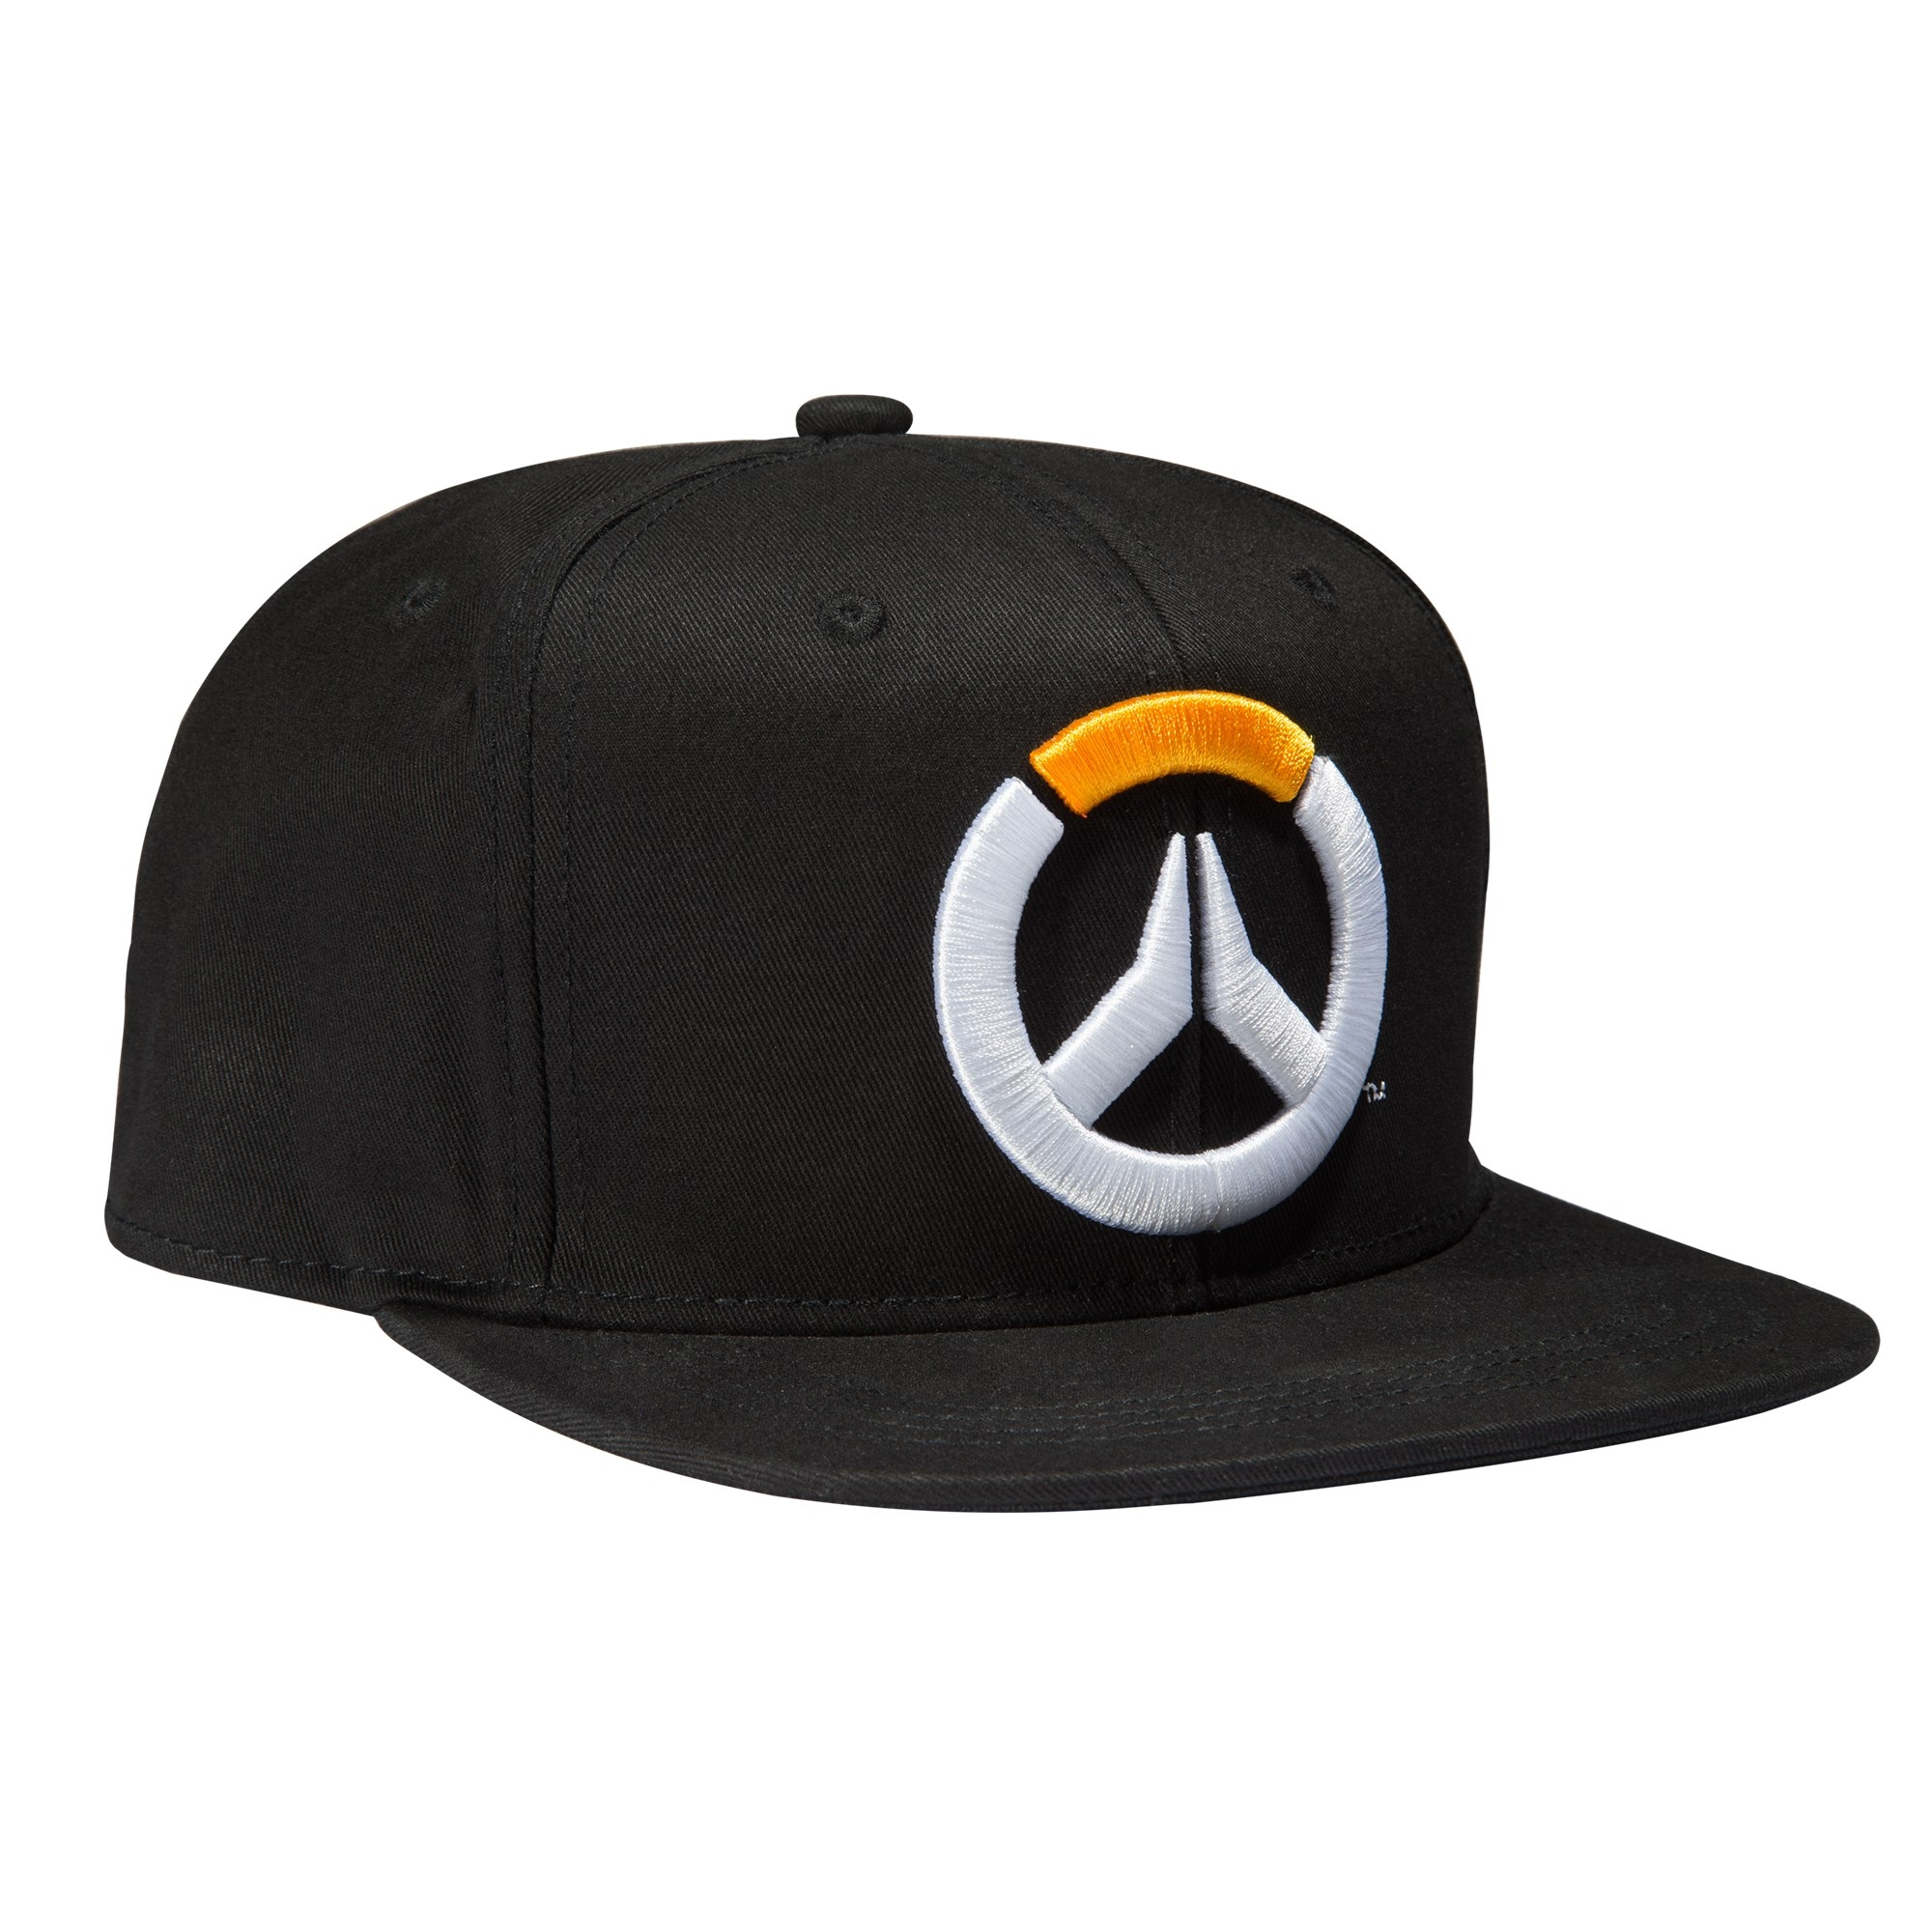 Overwatch Frenetic Snapback Cap